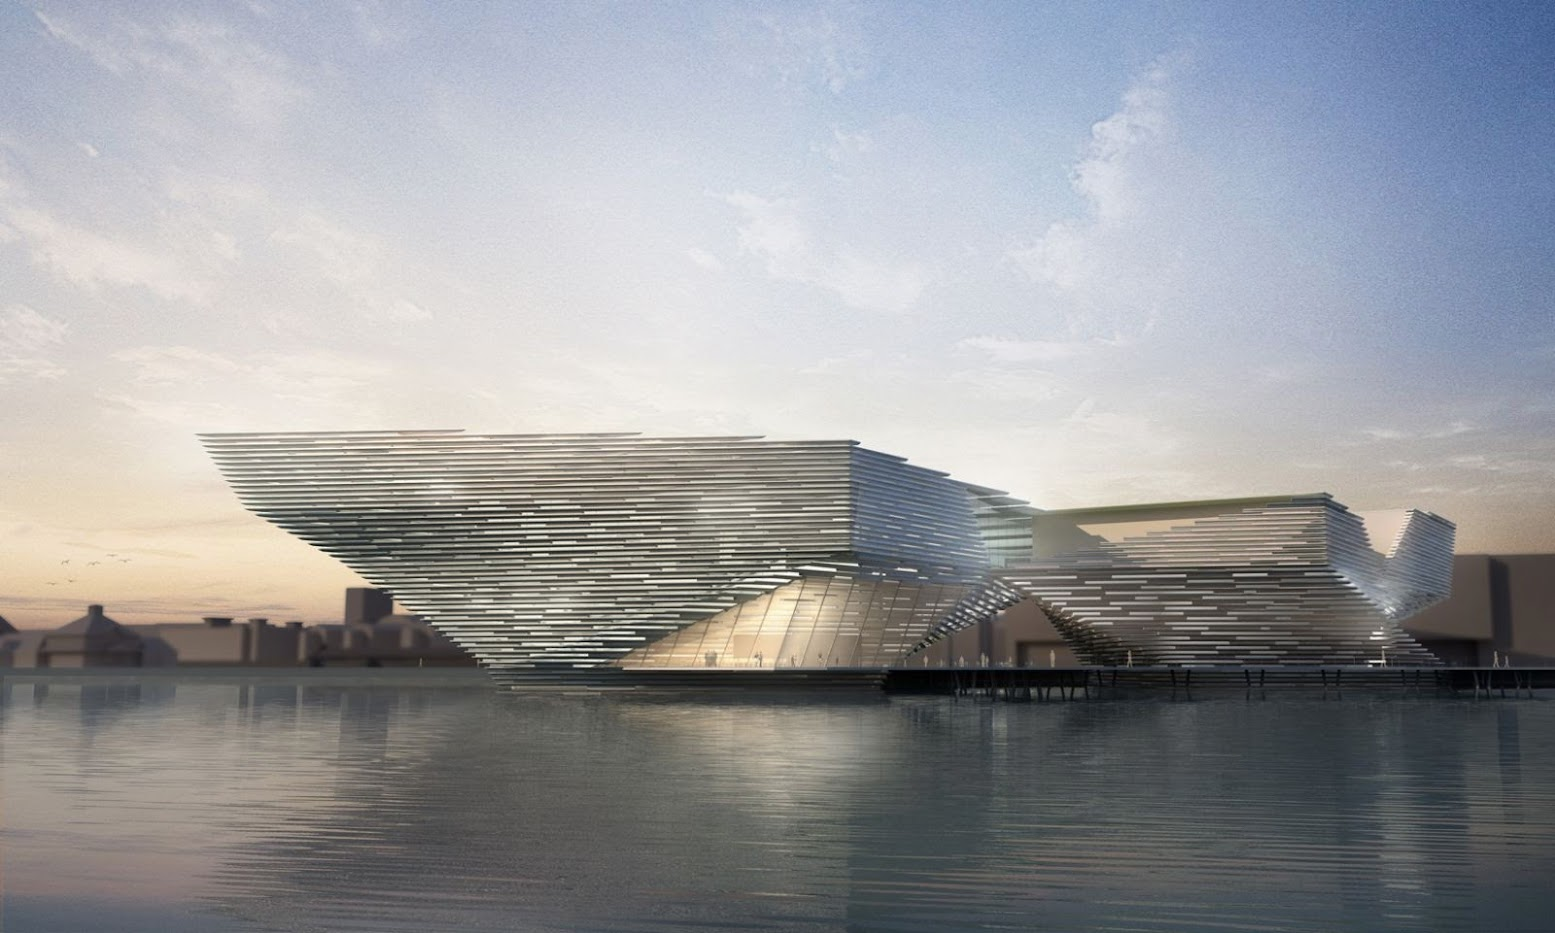 Dundee, Dundee City, Regno Unito: [V&A MUSEUM BY KENGO KUMA READ TO START]